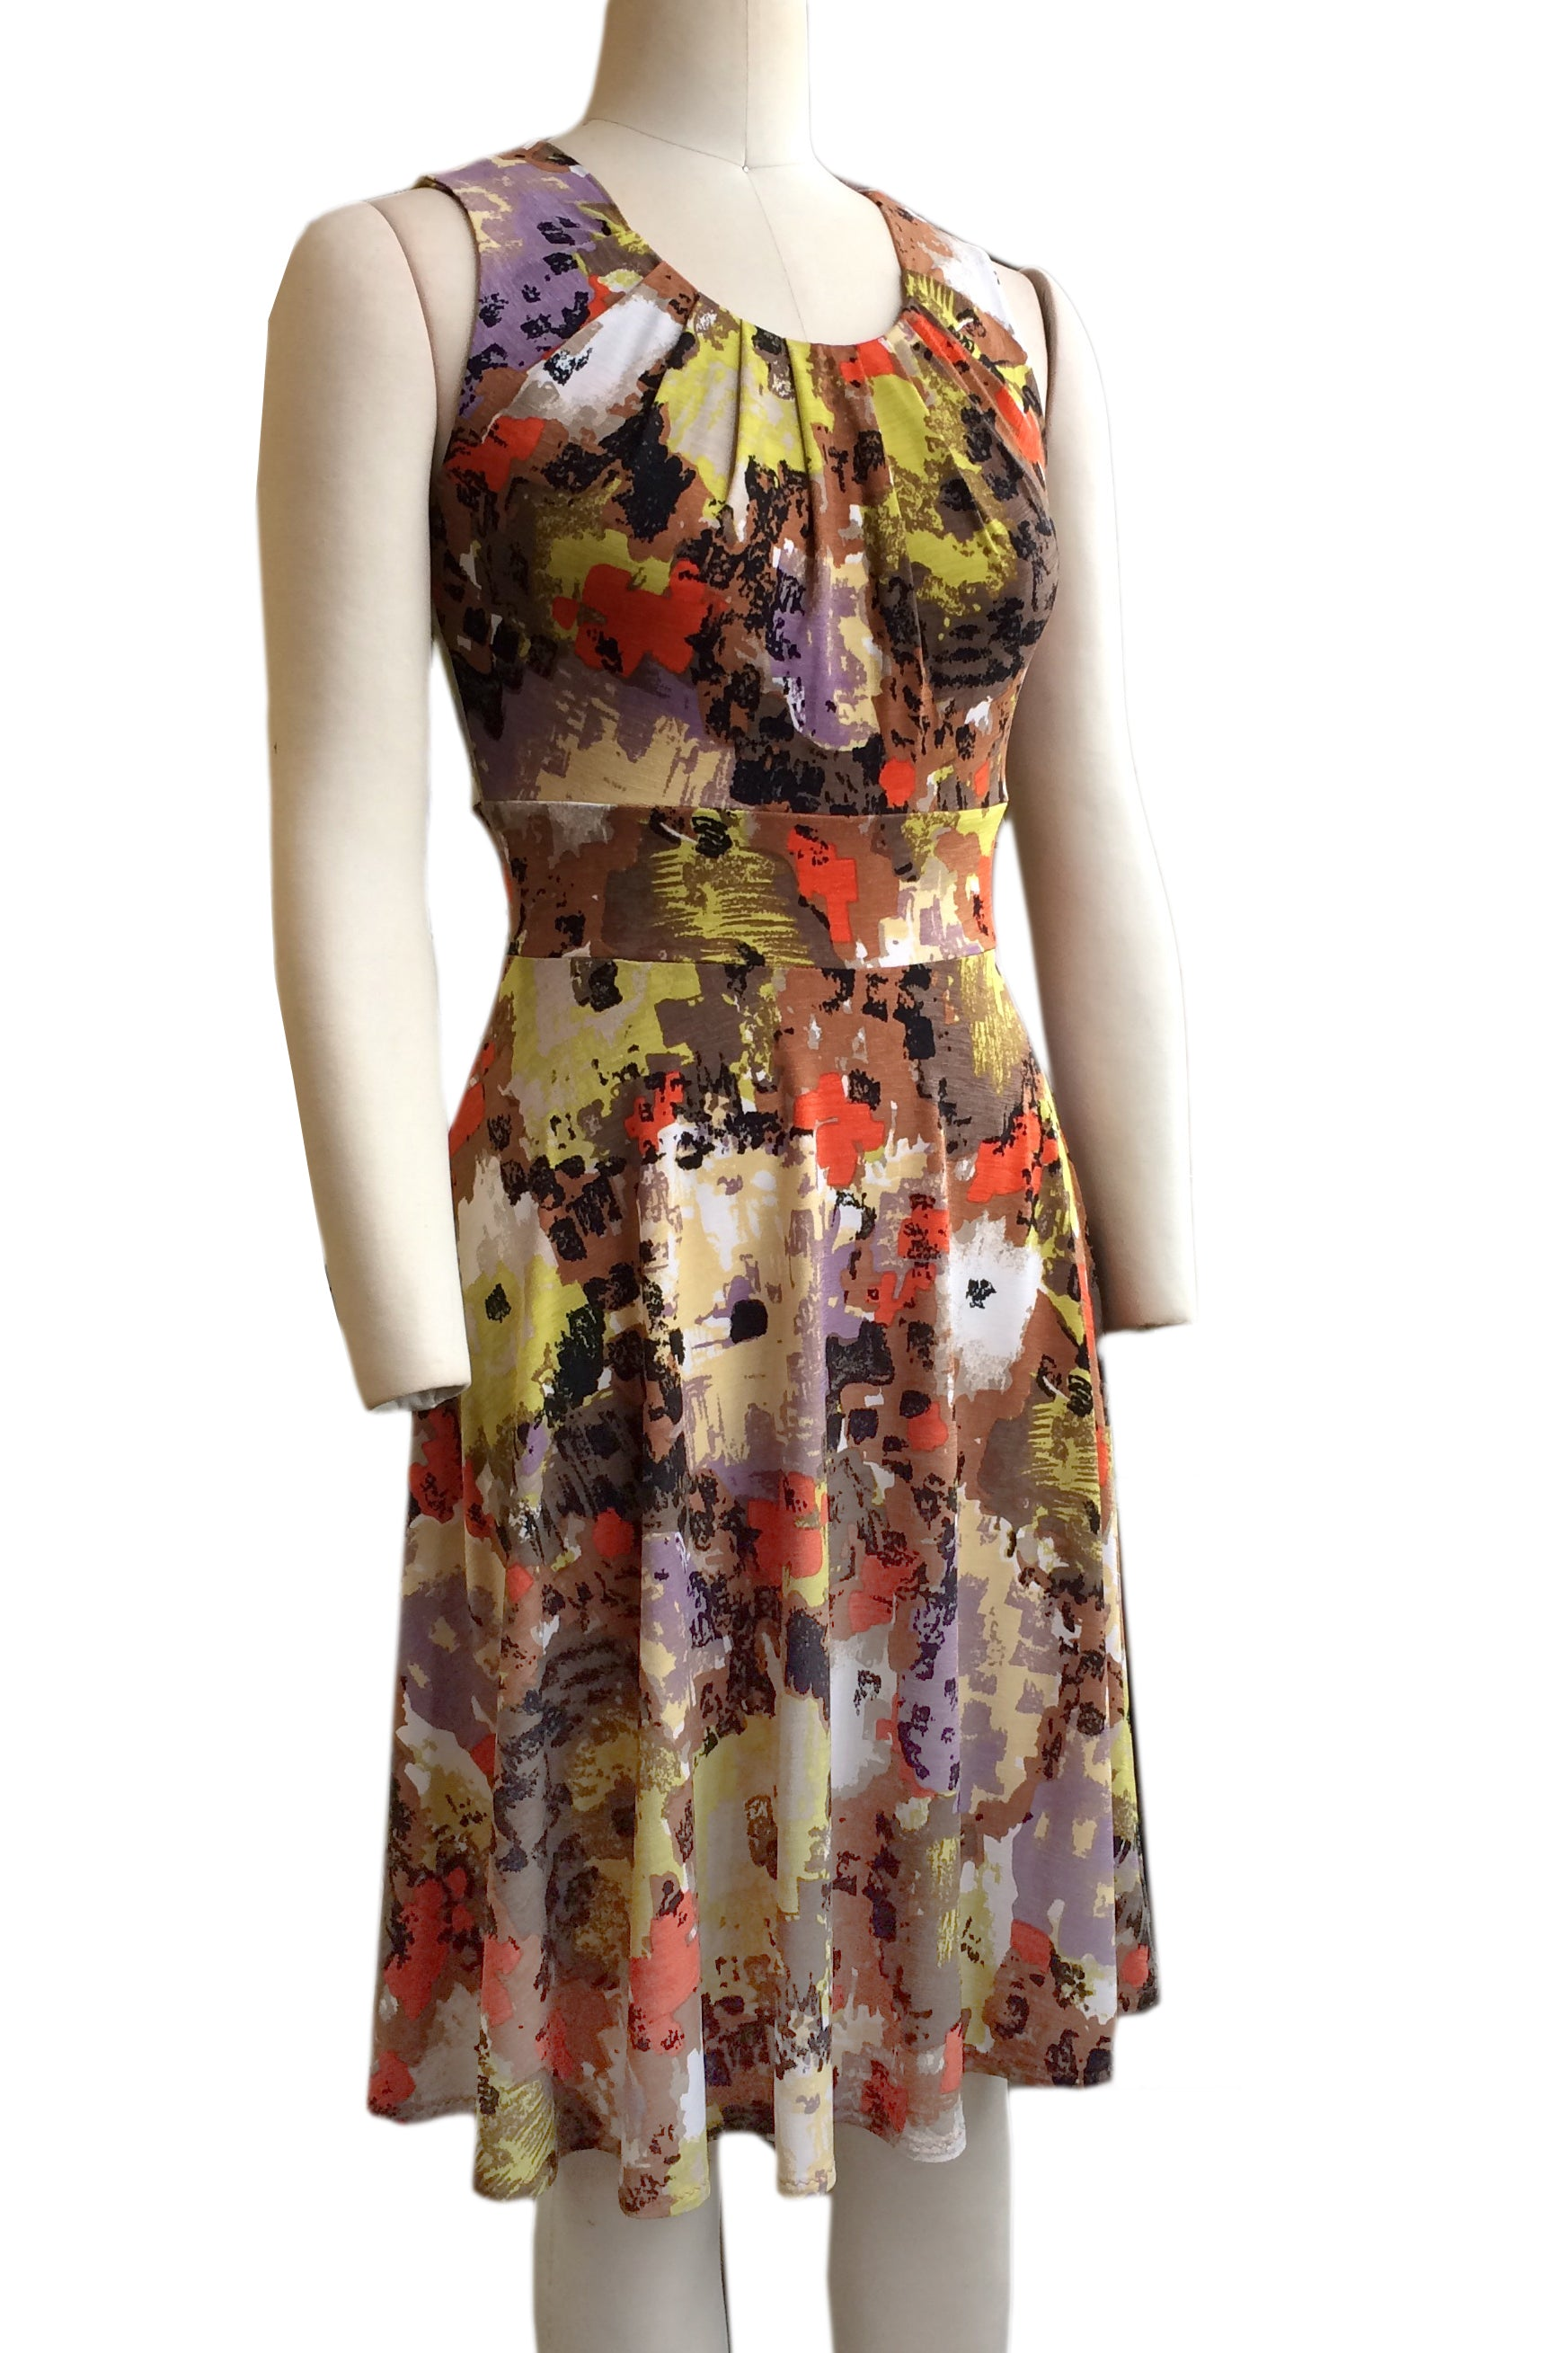 Rio Dress by Hericher, Monet, gathered scoop neck, wide waistband, sleeveless, fit and flare shape, sizes XS to XL, made in Quebec